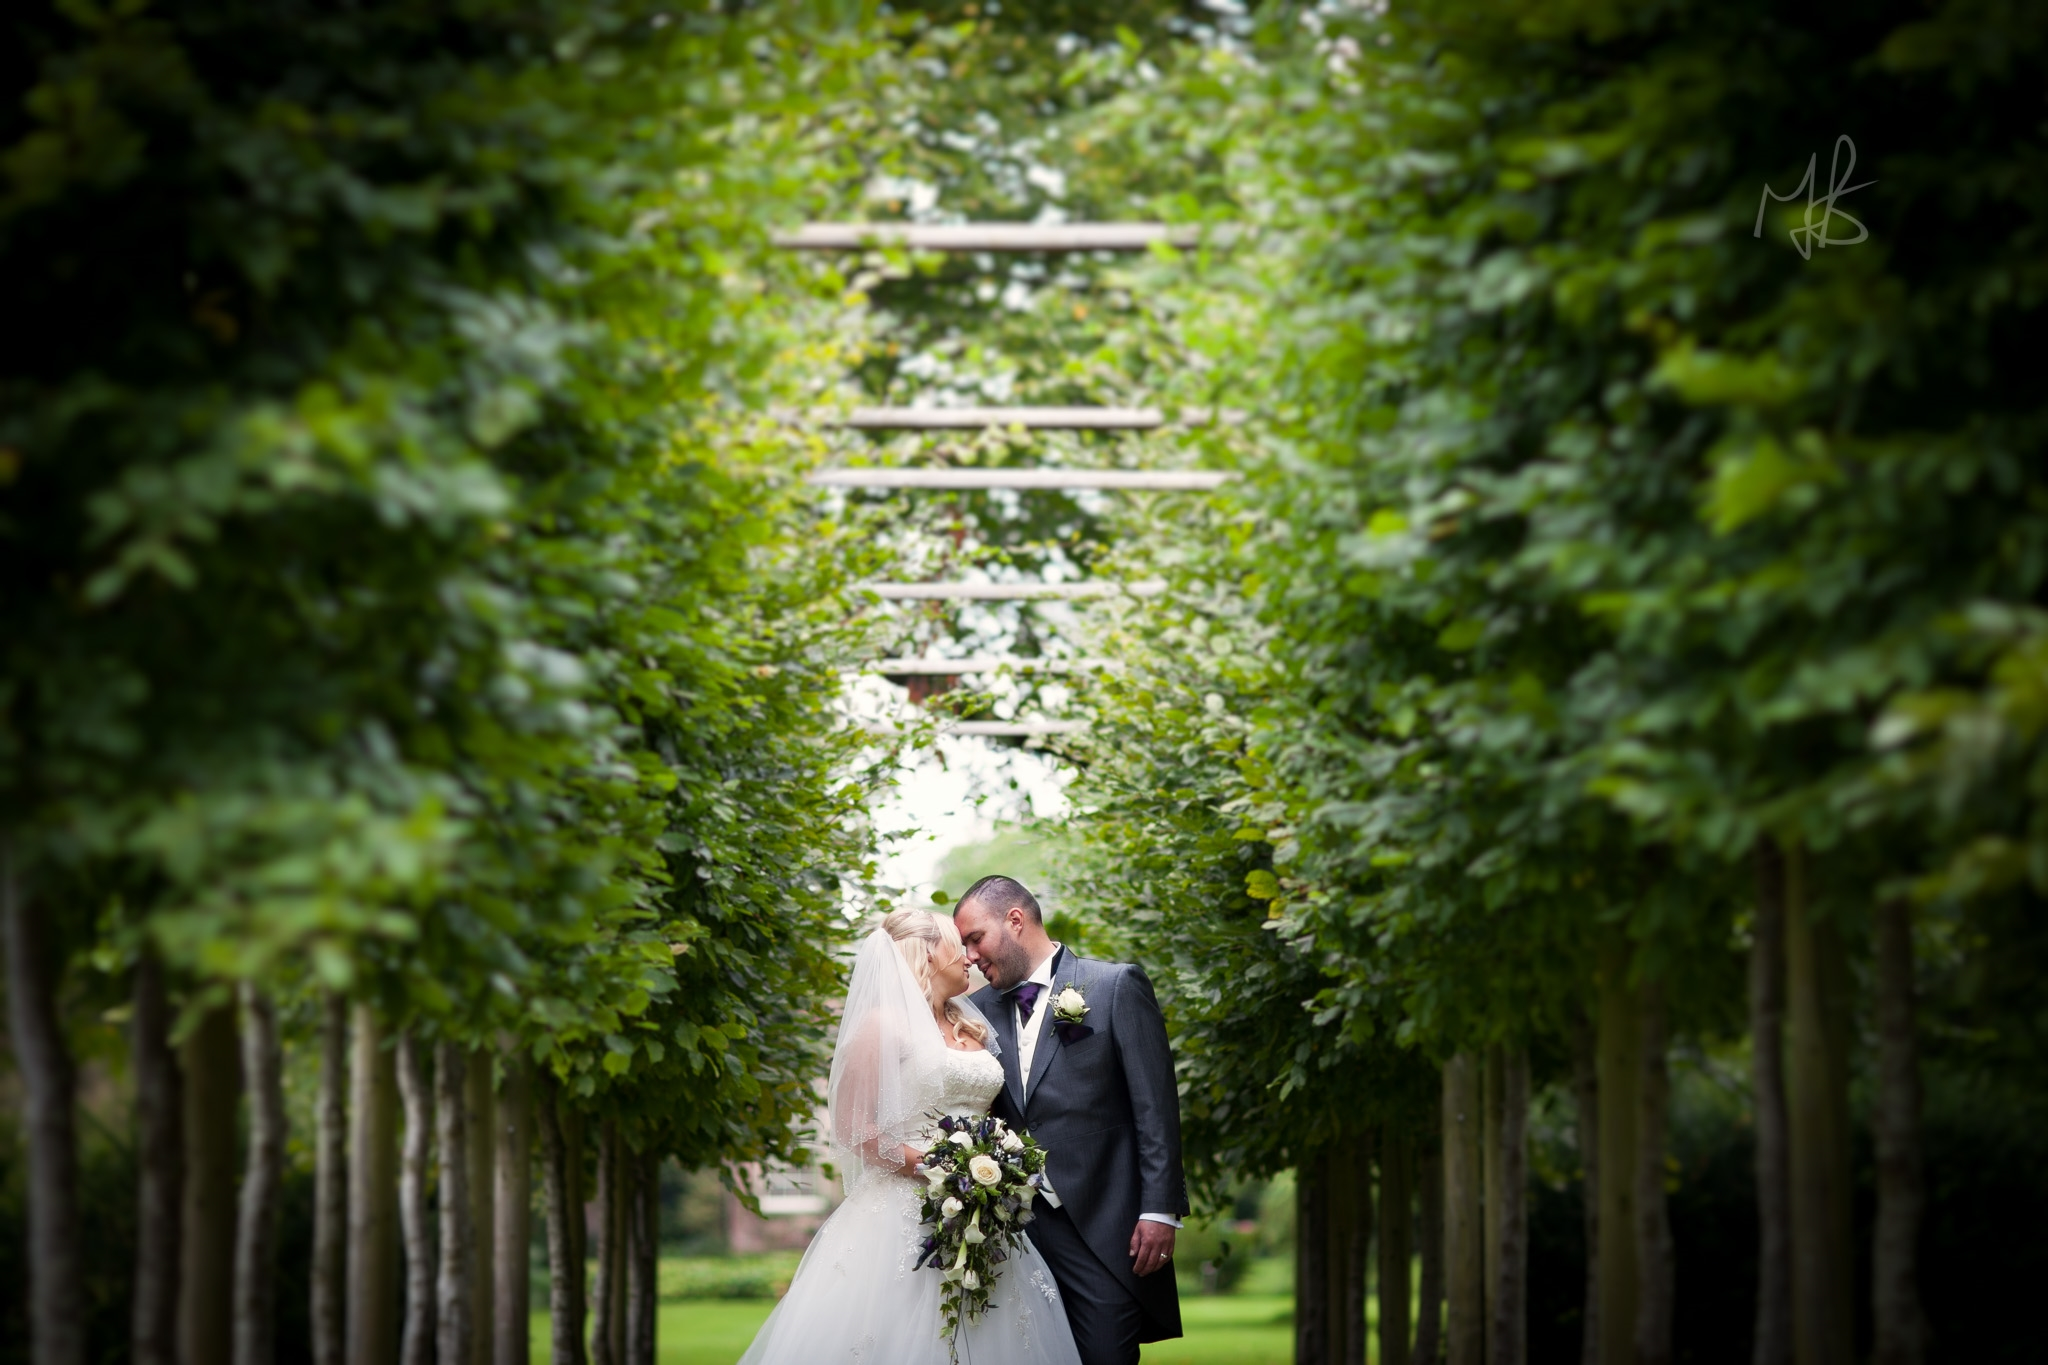 Northern_Ireland_Wedding-Photographer-Mark-Barnes-Hallsannery_House_Wedding_Photography-1-2.jpg